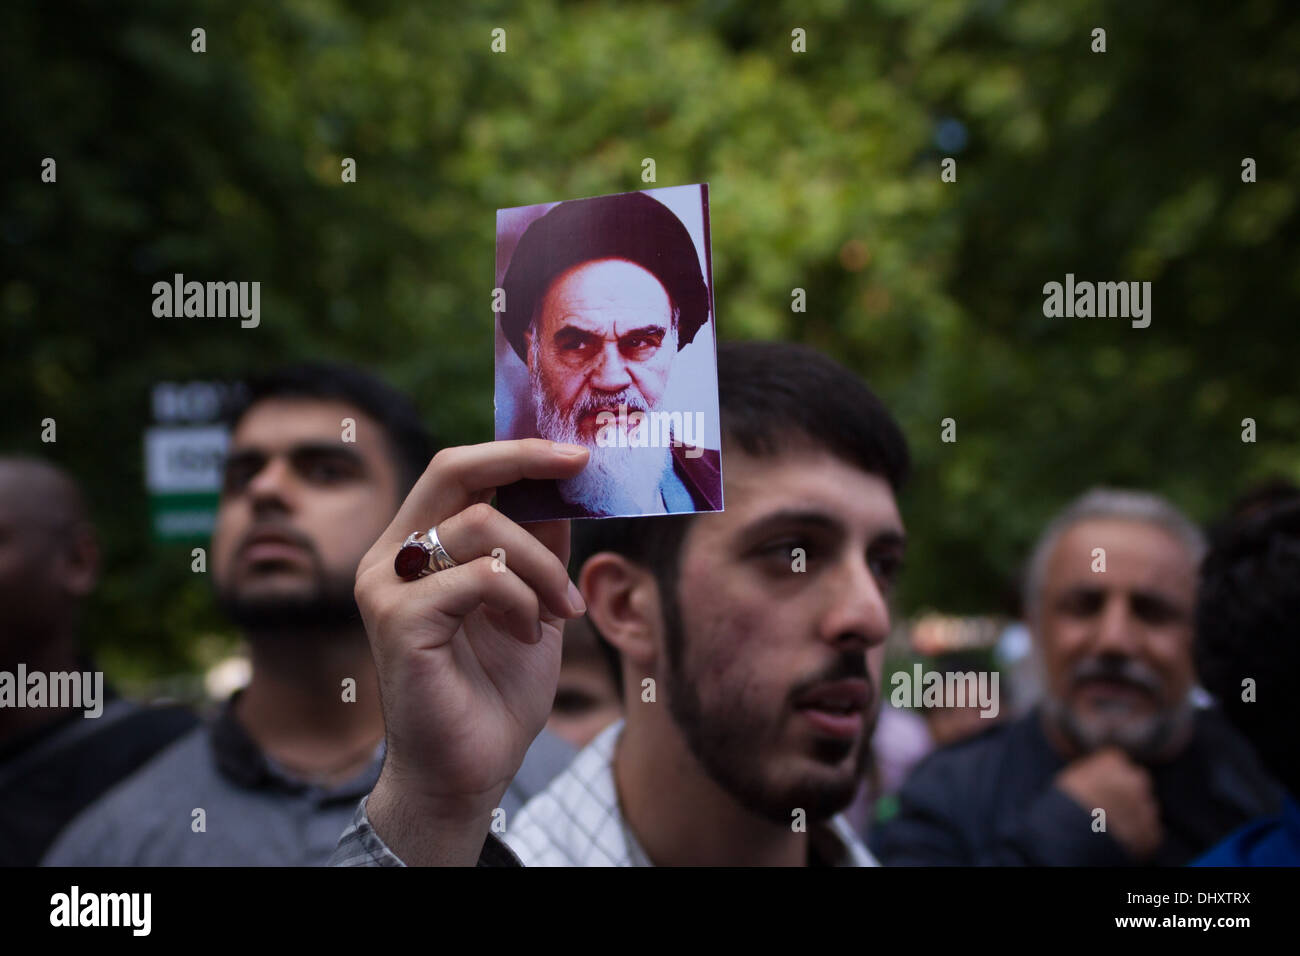 A man holds a photo of former Iranian leader Ruhollah Khomeini at the 2013 Al-Quds day demonstration, London. - Stock Image